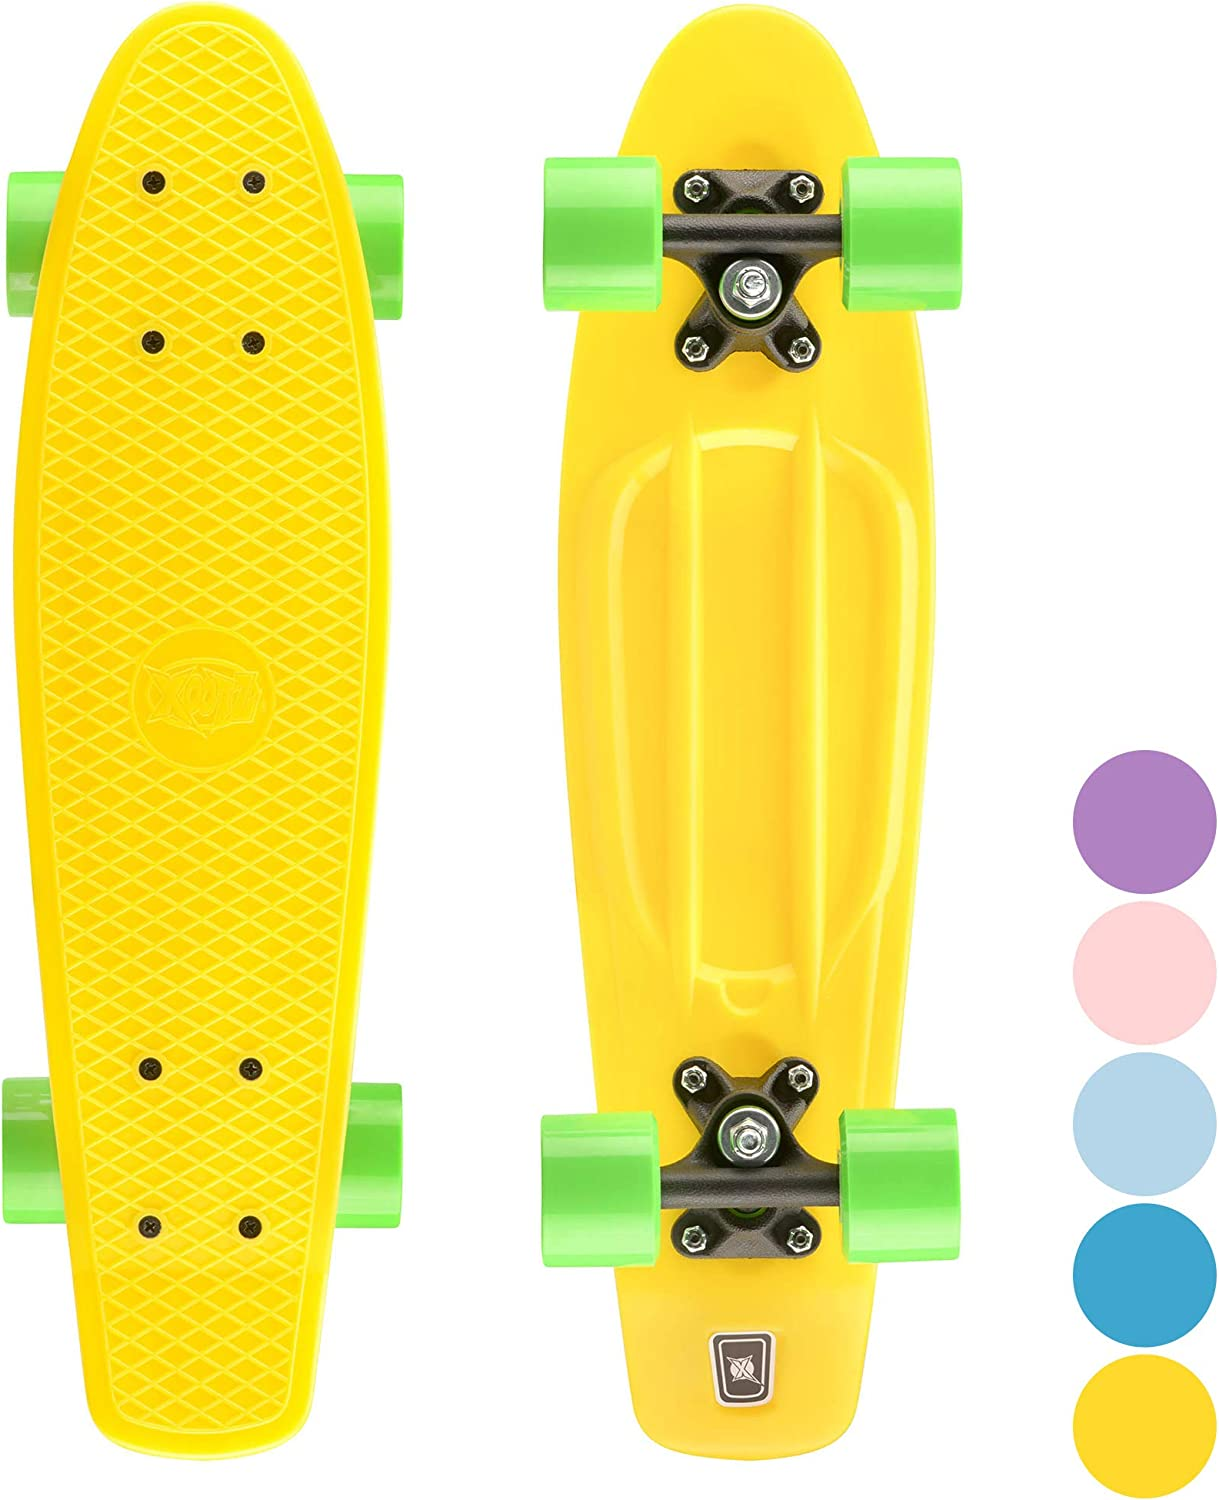 Xootz Kid's Mini Cruiser Skateboard, Retro Plastic Complete Skateboard for Boys and Girls / UK